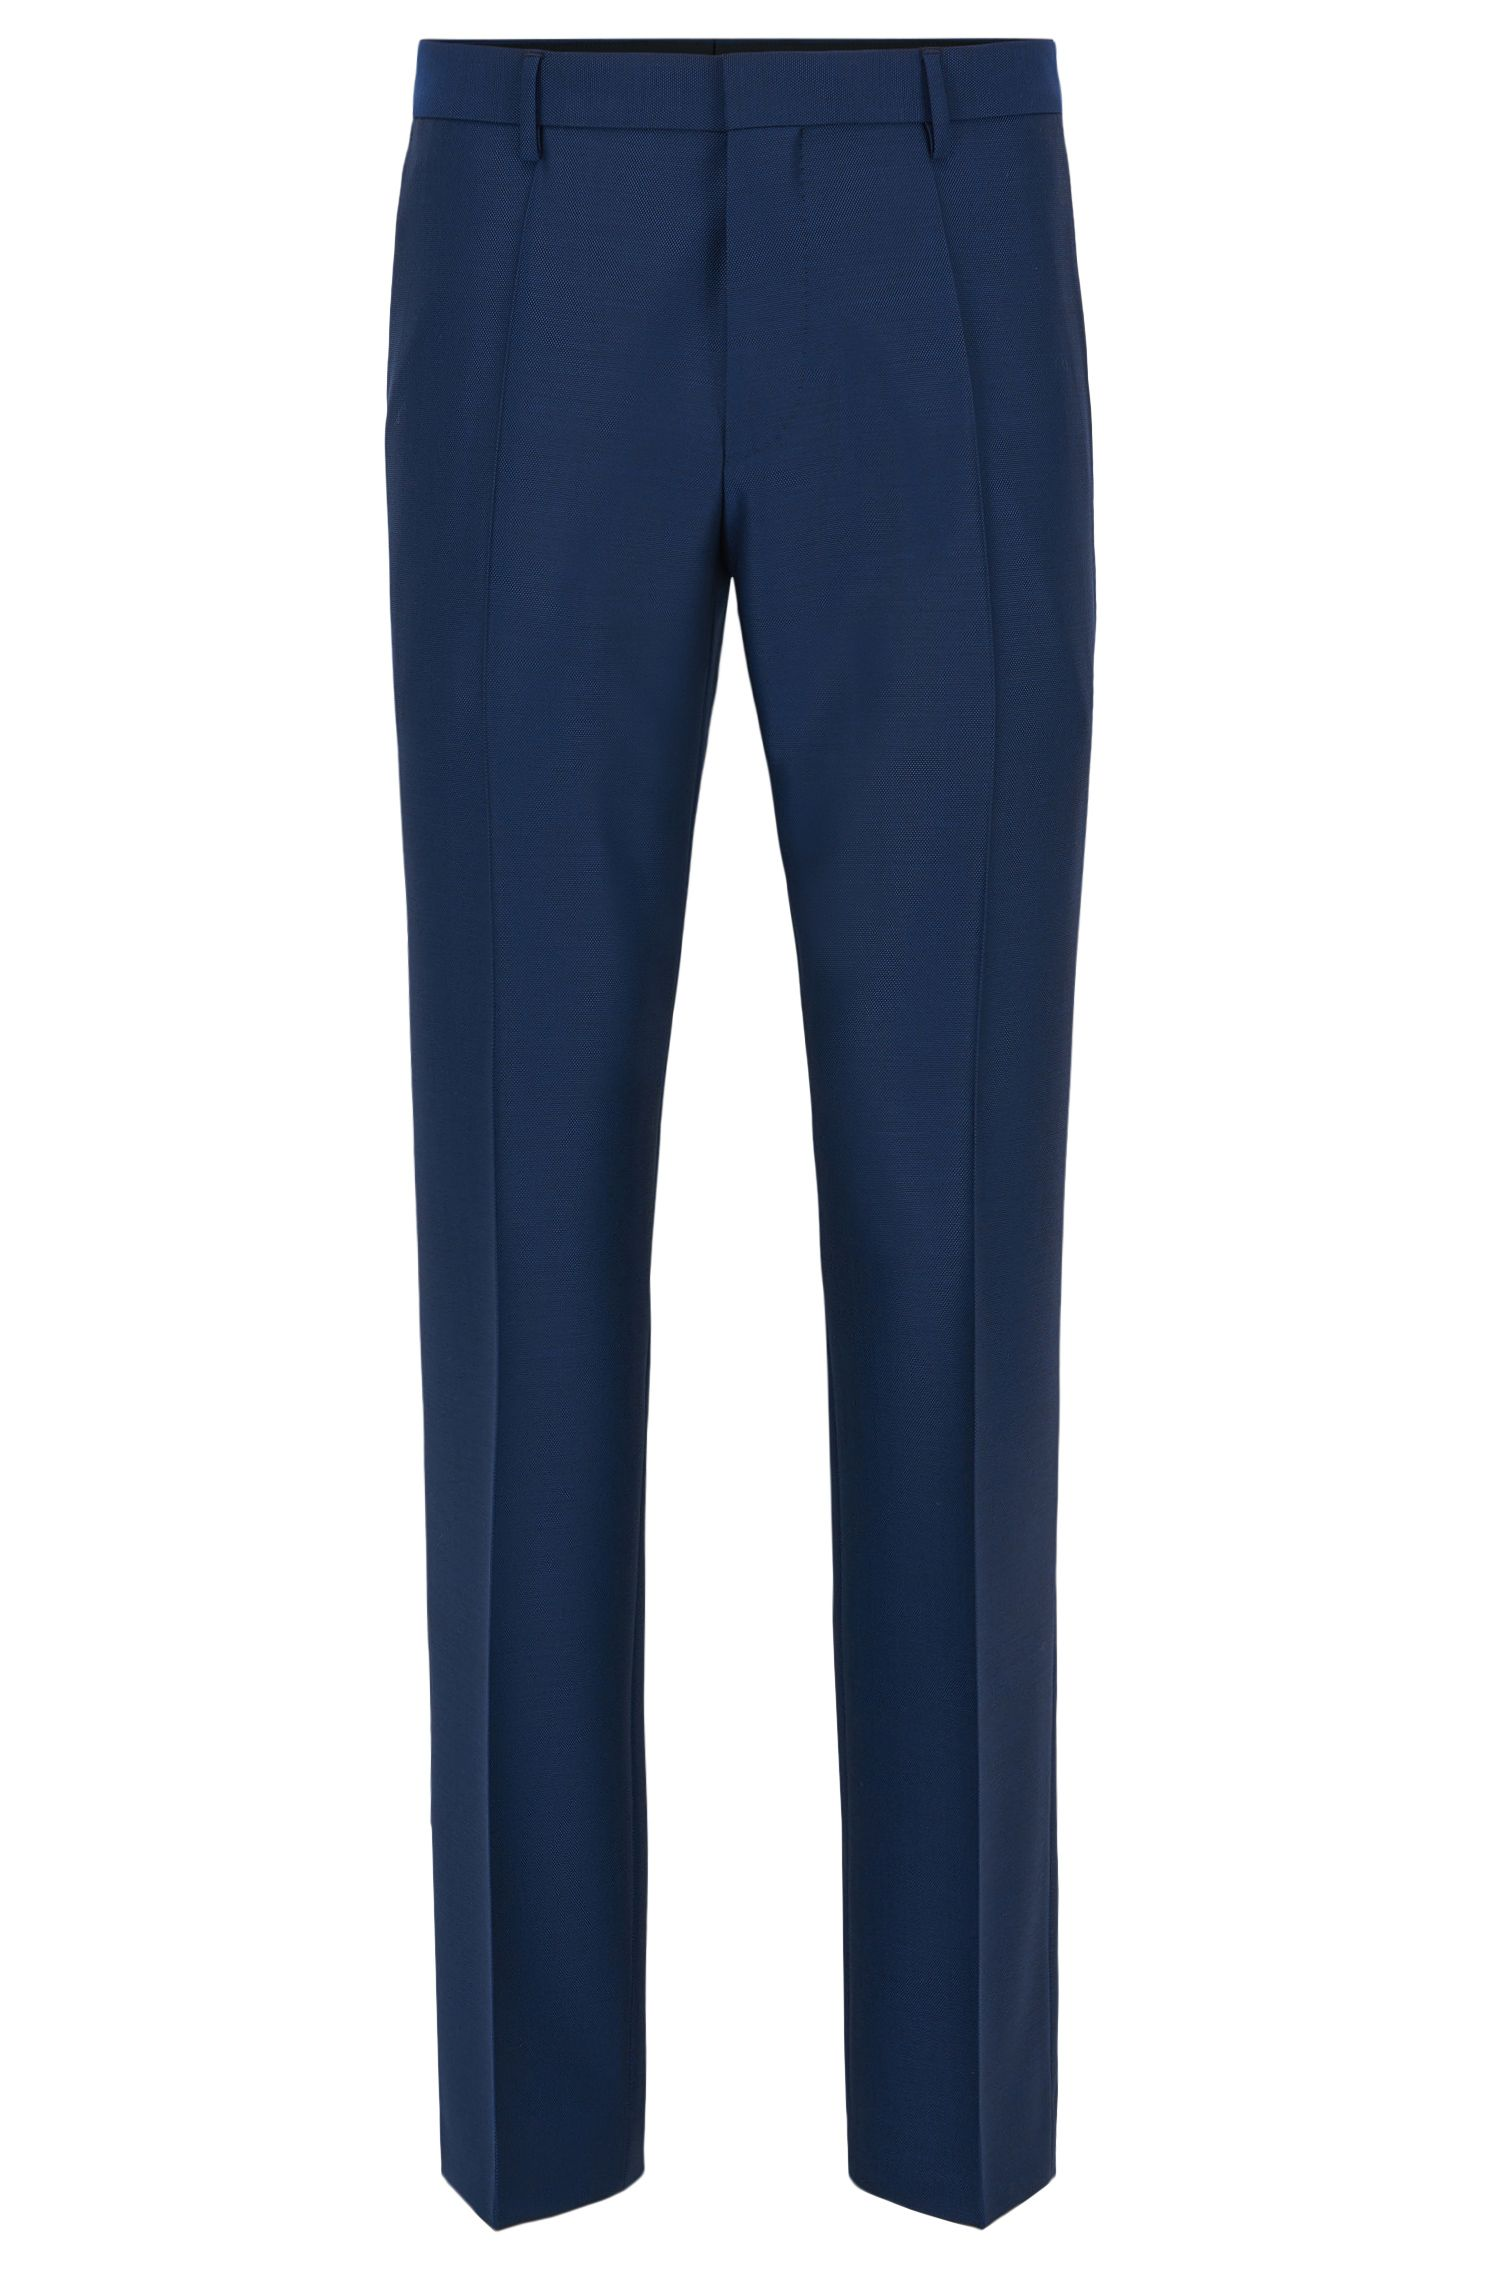 Virgin Wool Pant, Slim Fit | Genesis, Dark Blue